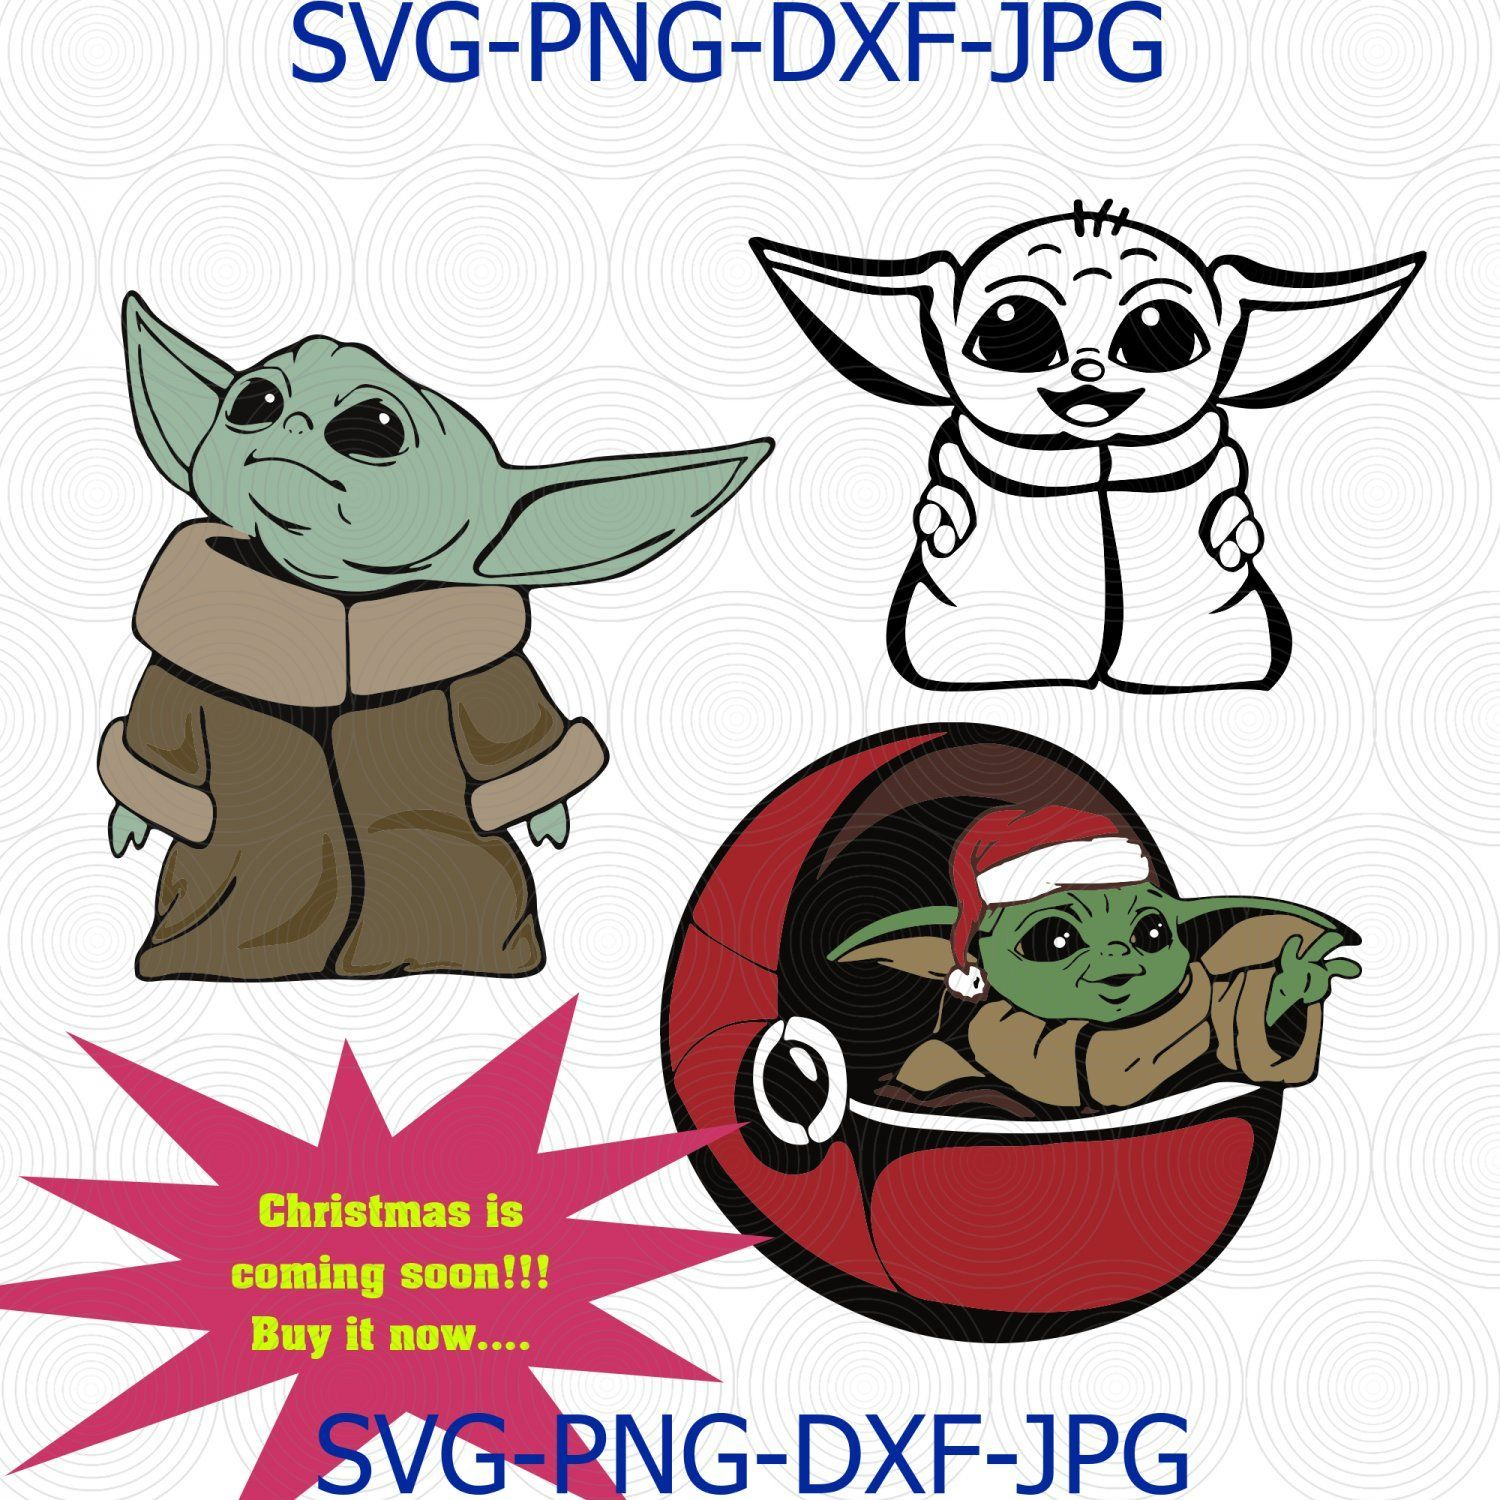 Baby Yoda Svg Baby Yoda Baby Yoda Vector Baby Yoda Silhouette The Child Svg In 2020 Star Wars Drawings Yoda Drawing Yoda Art